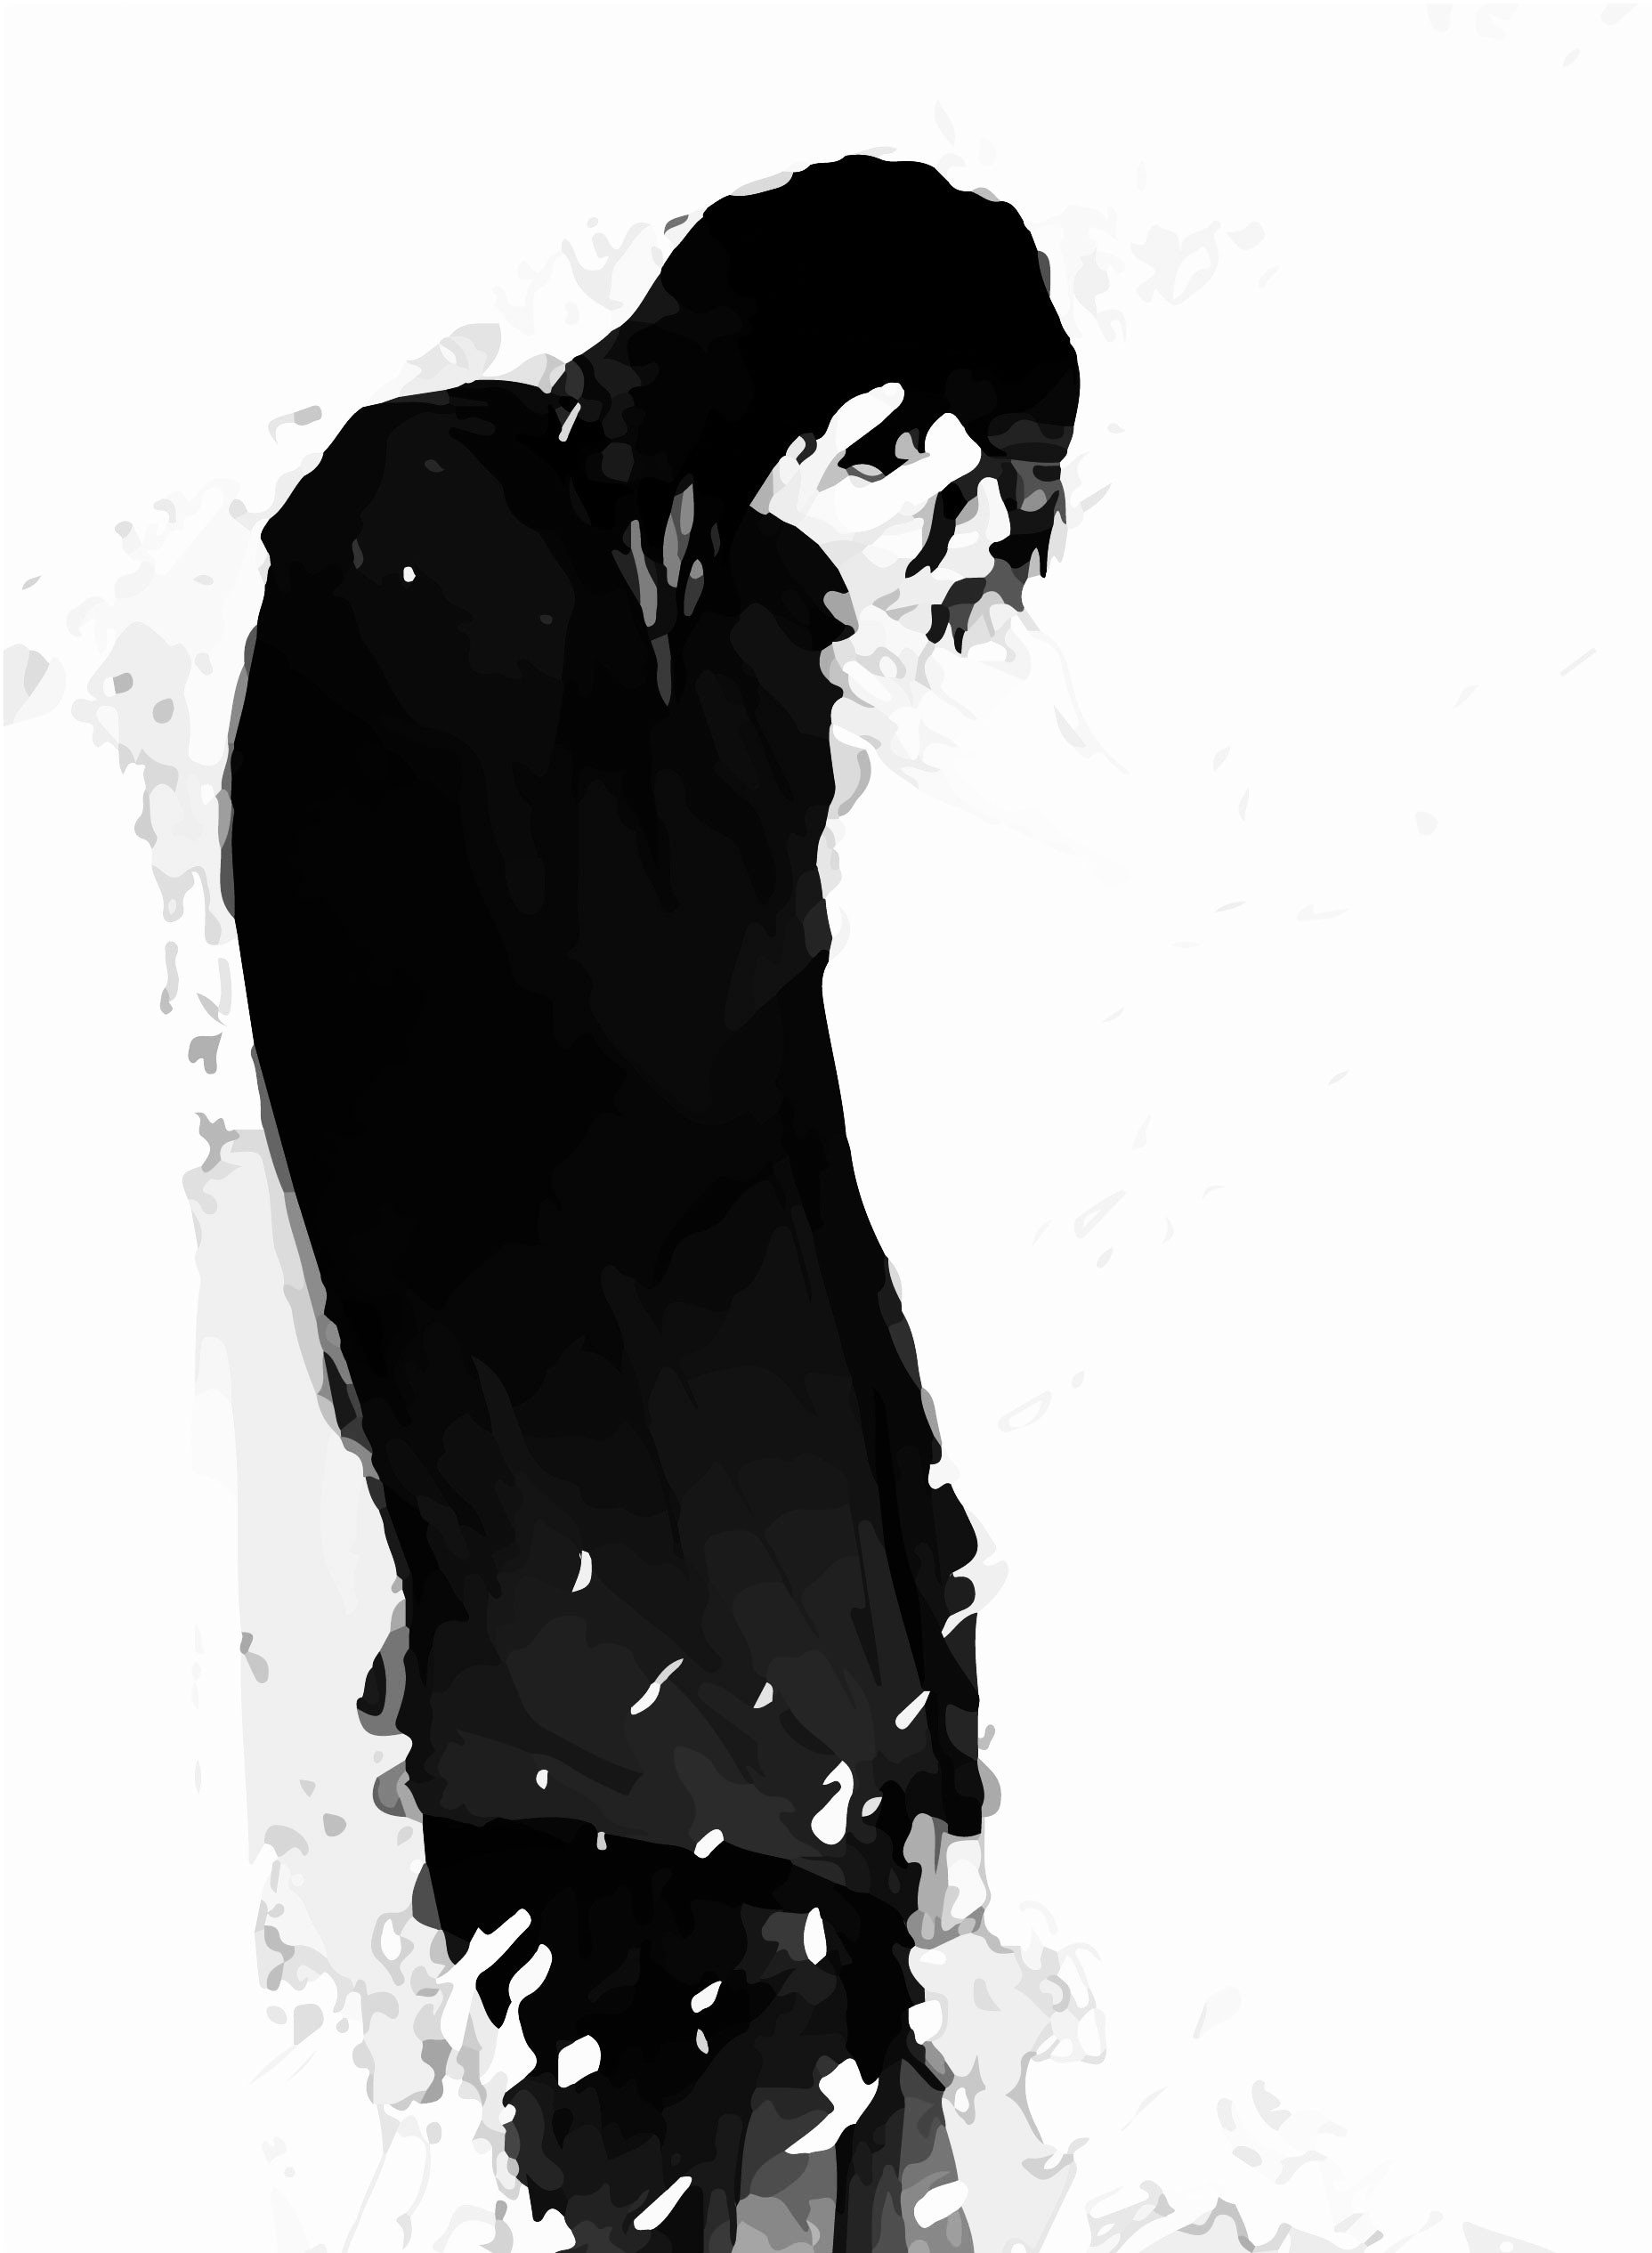 Sad Anime Boy Wallpaper